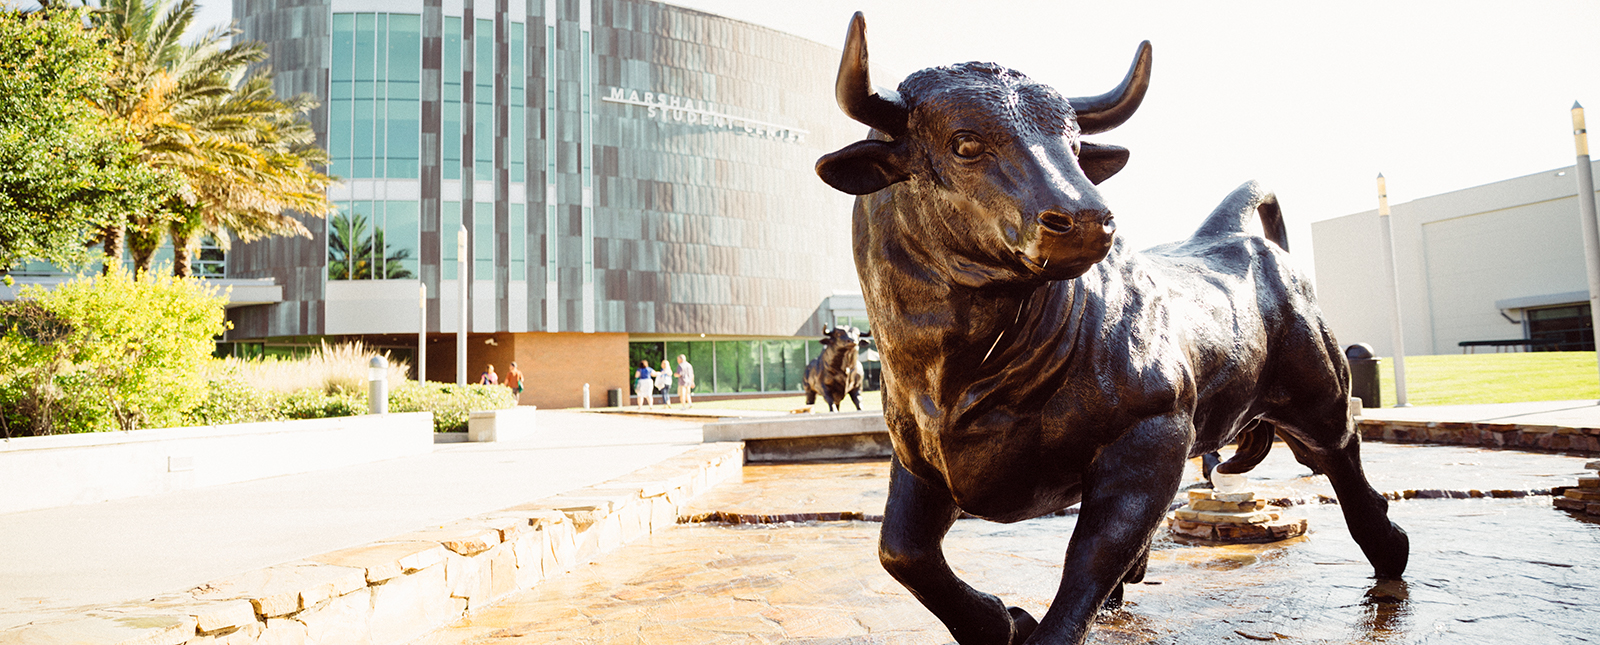 Rocky the Bull Statue in front of Marshall Center